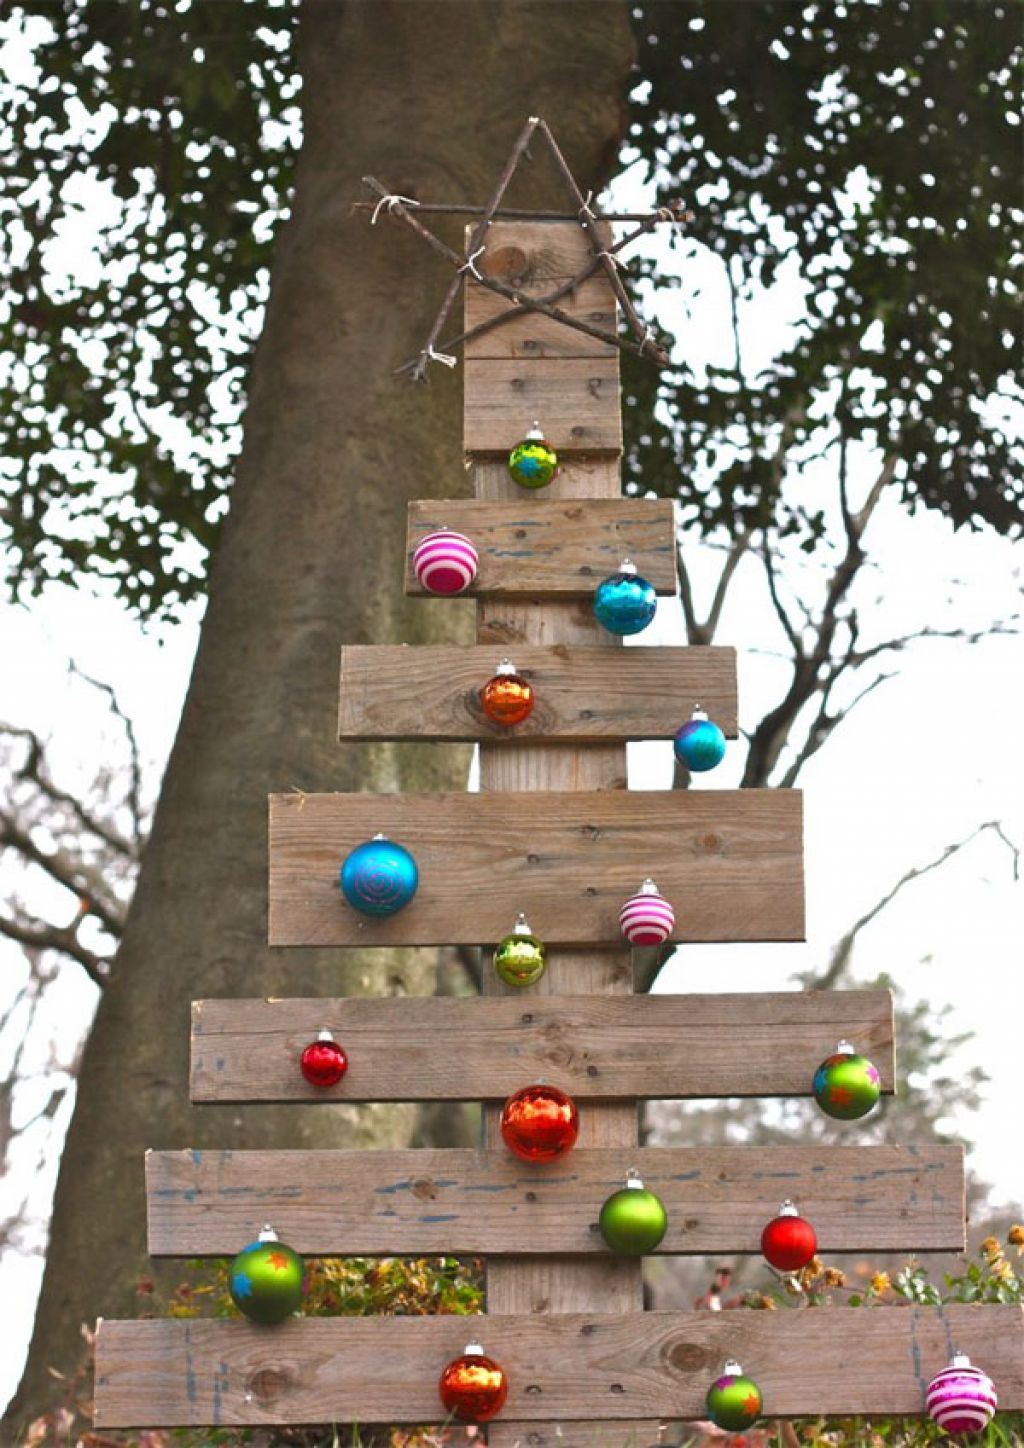 Homemade christmas yard decorations ideas -  Diy Christmas Yard Decorations Outdoor Decorating Ideas Download